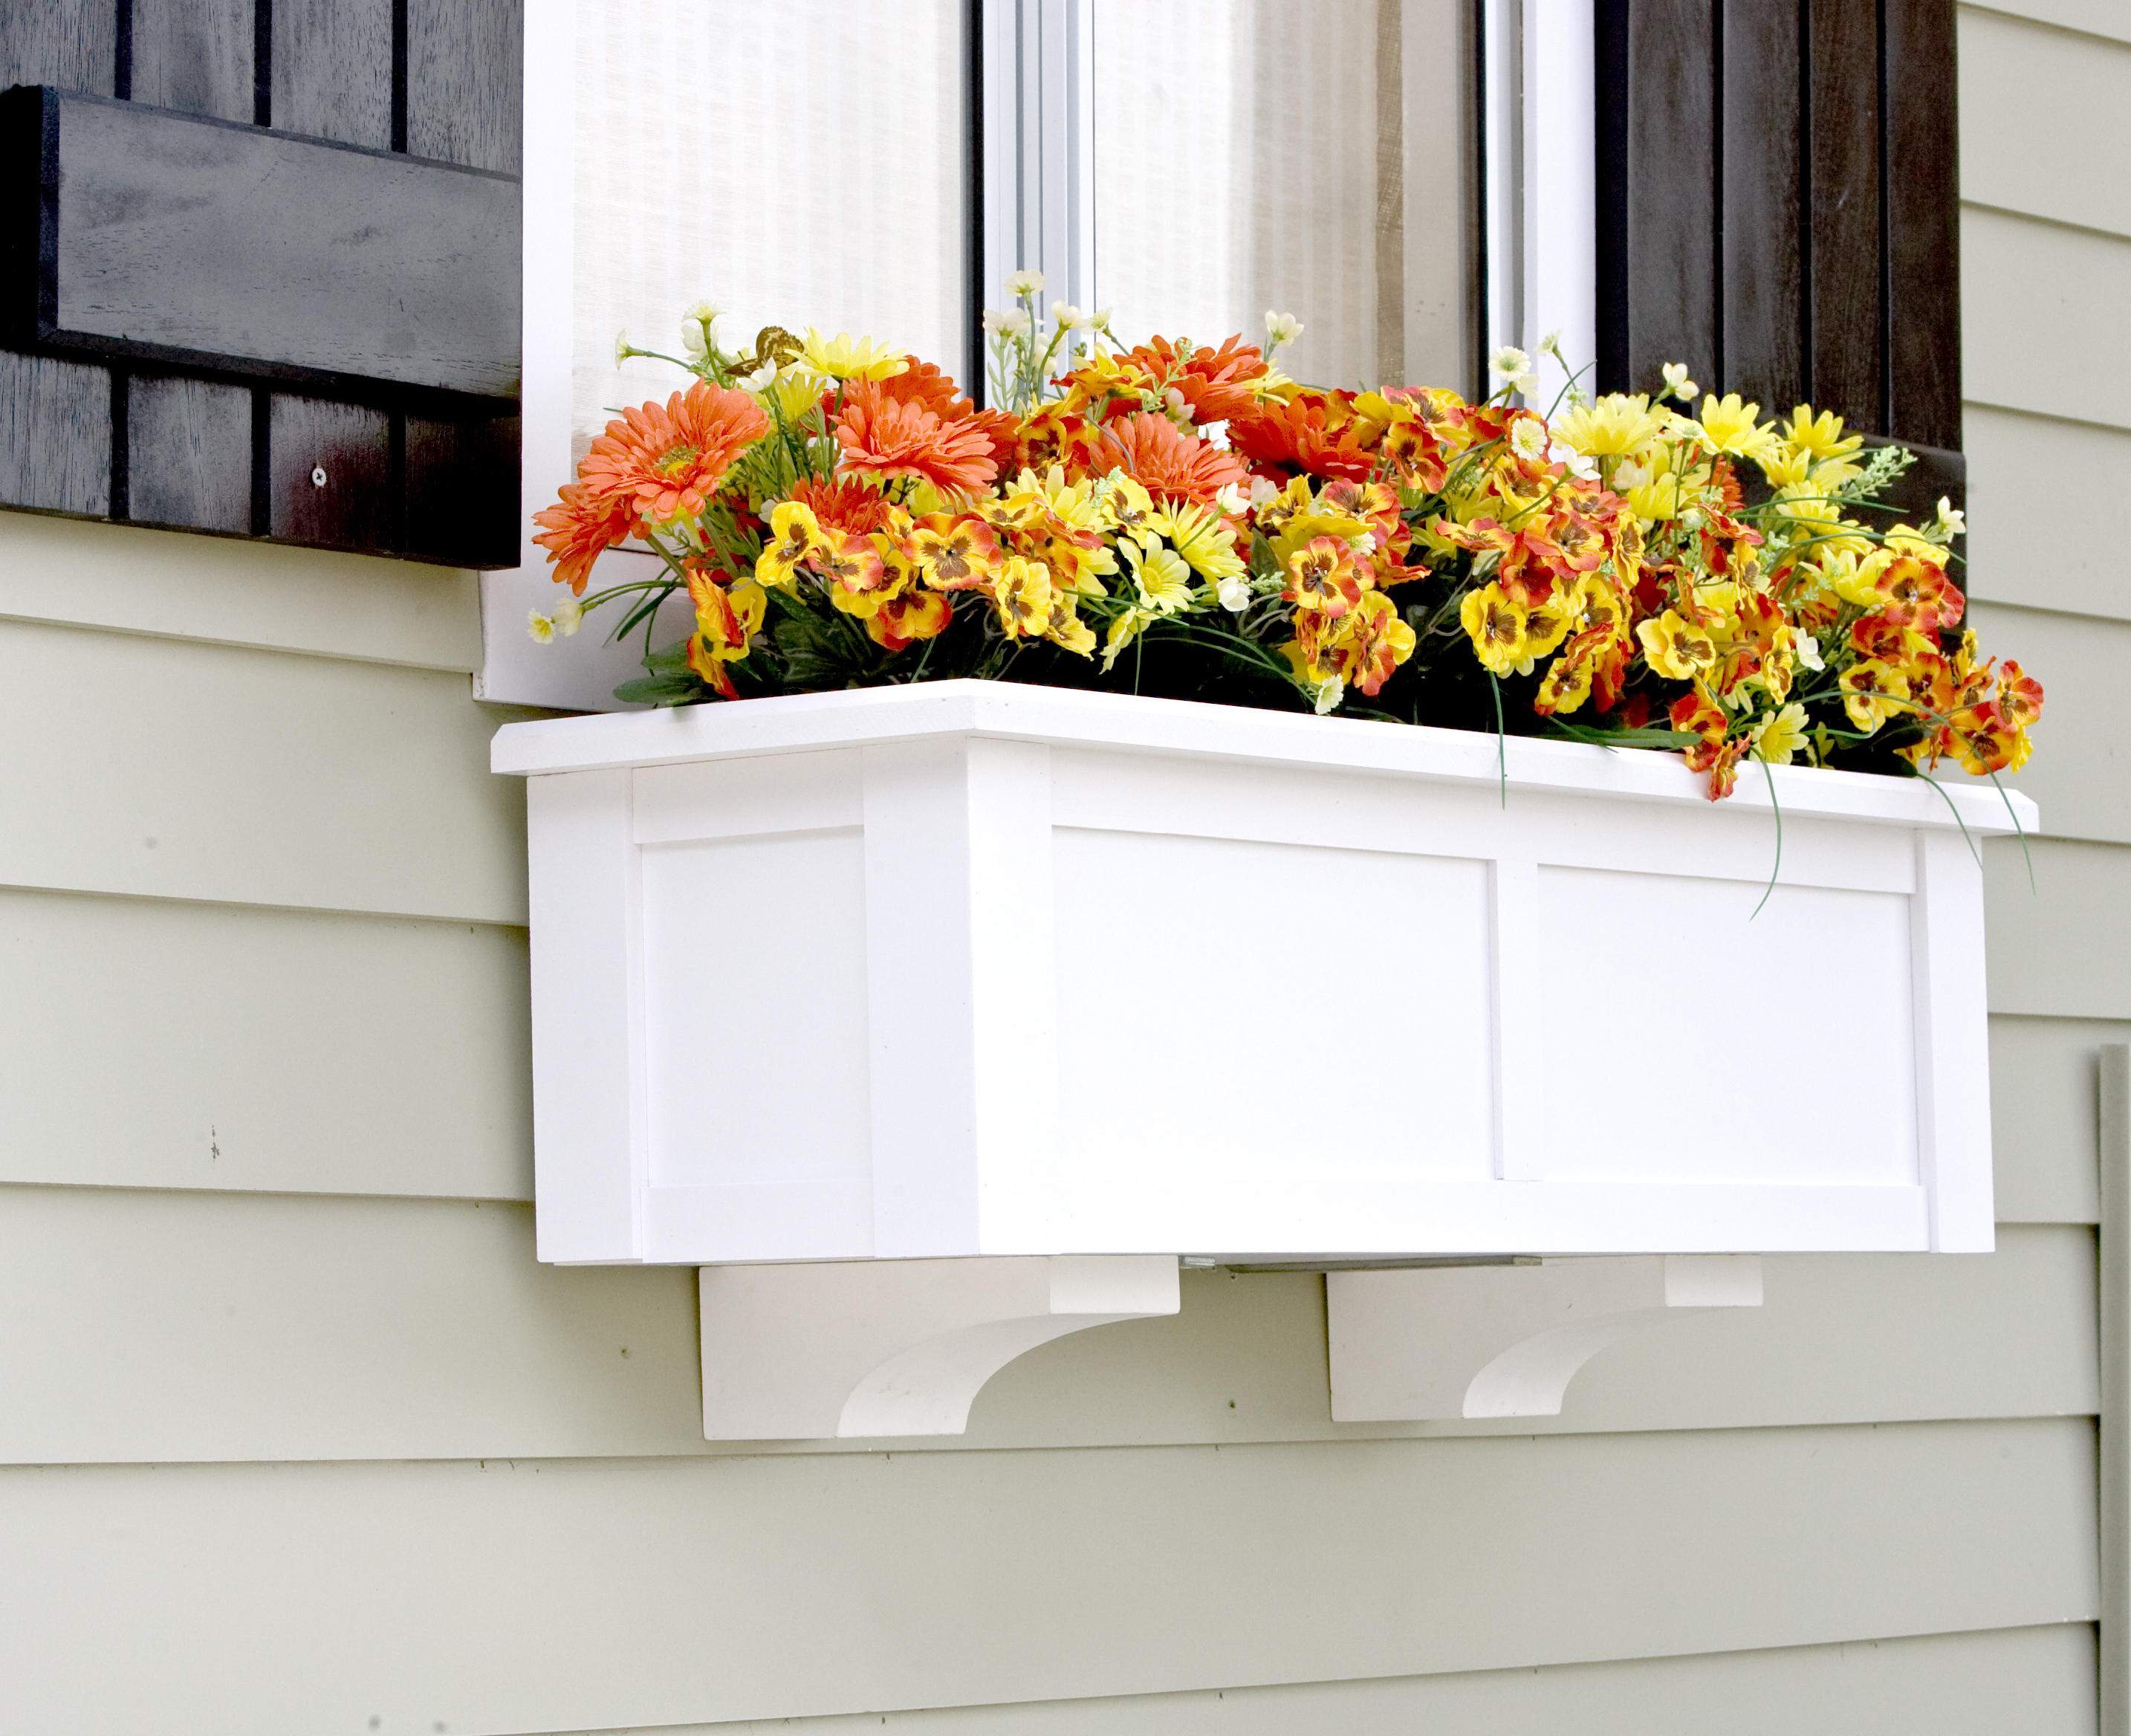 Upgrade Window Boxes with Decorative Corbels